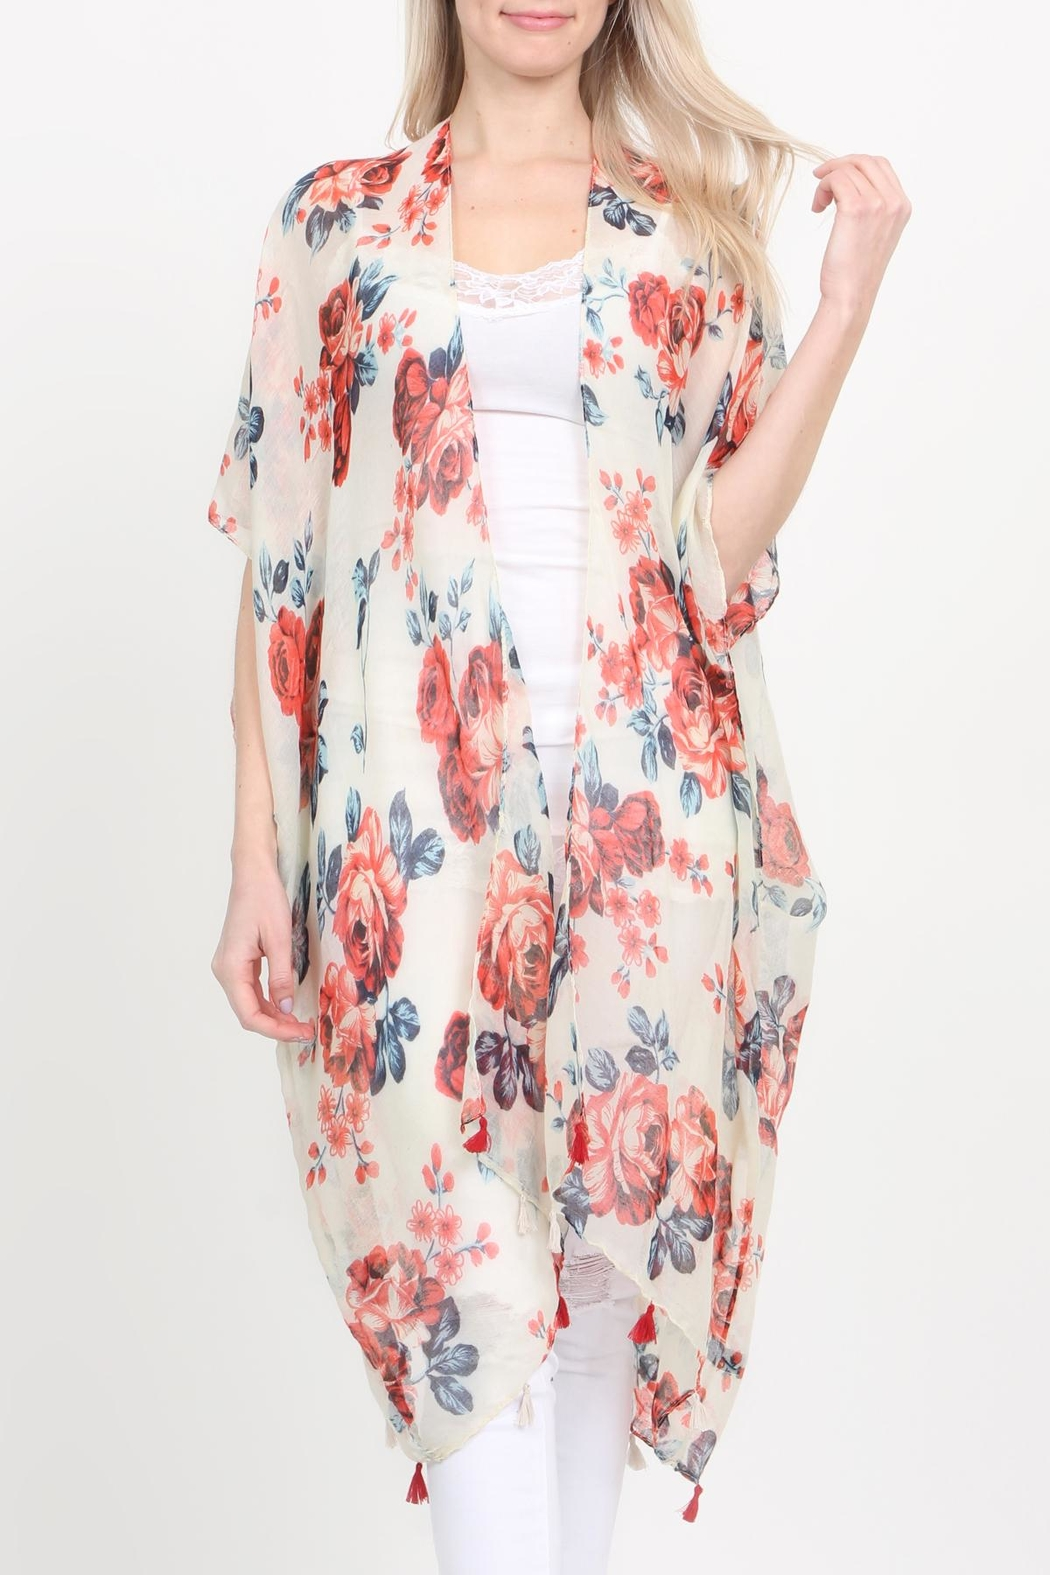 Riah Fashion Open-Front Knee-Length Floral-Cardigan - Front Full Image